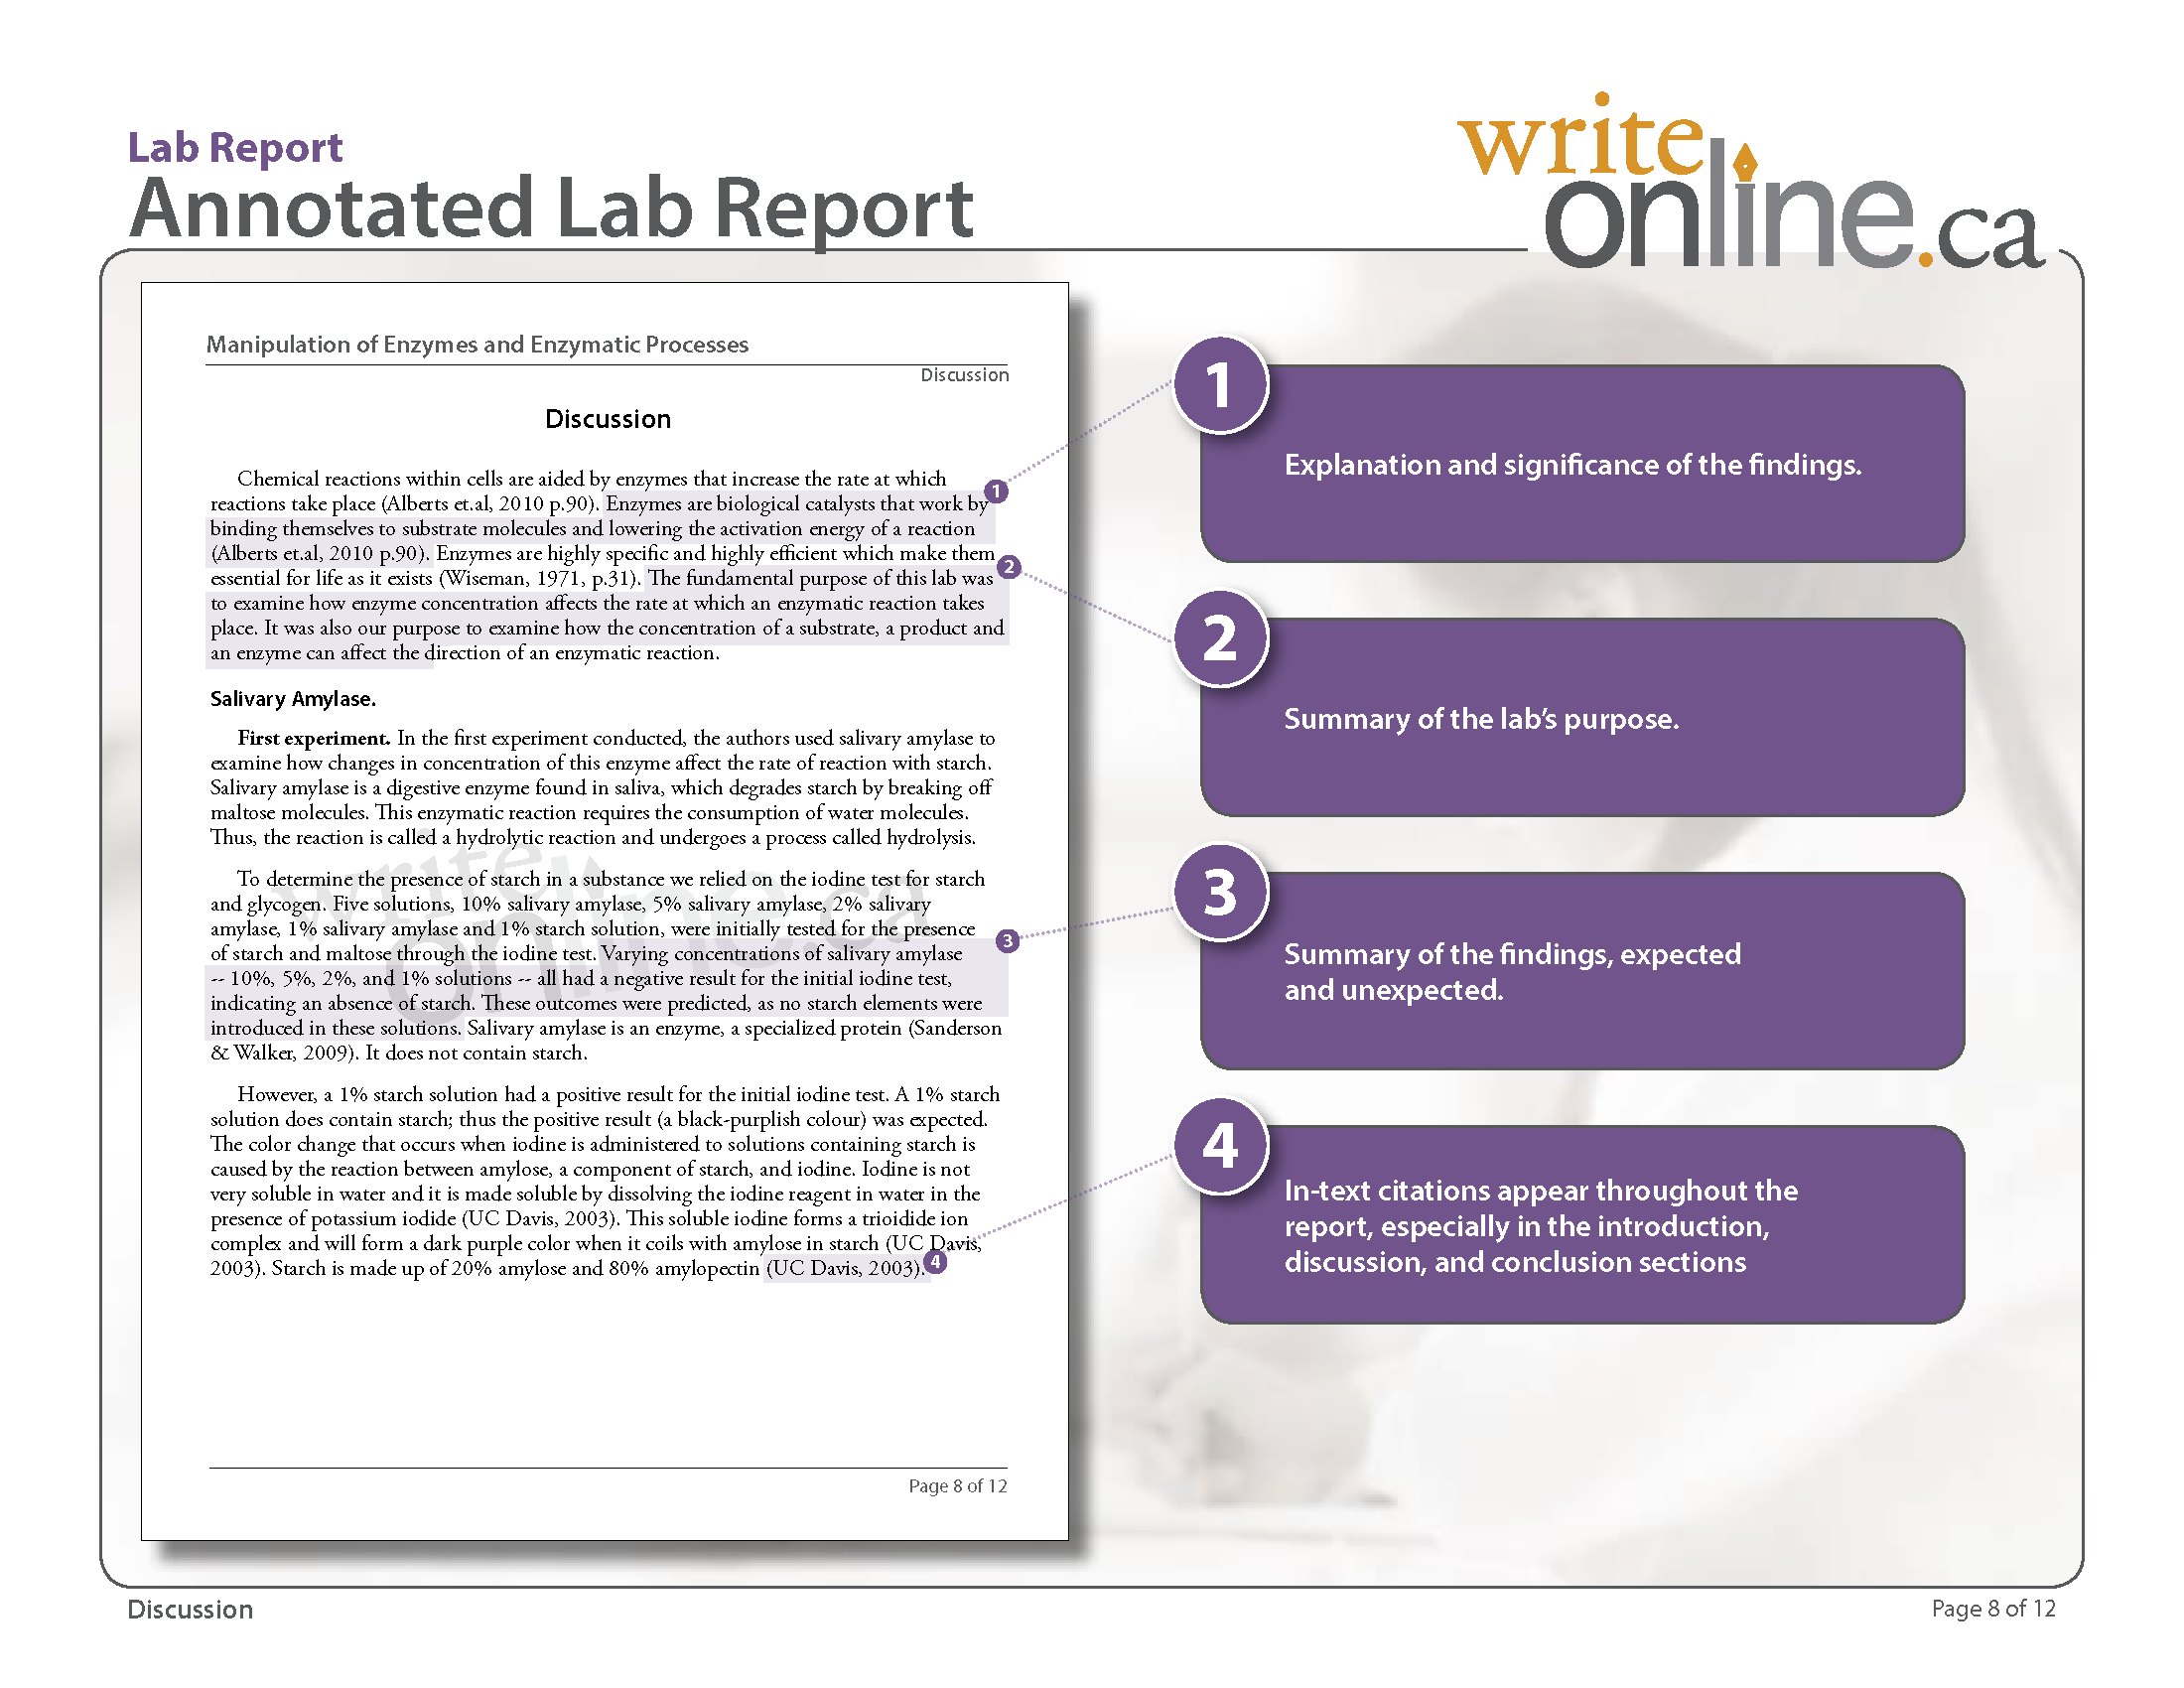 018 Labreport Annotatedfull Page 08 Research Paper Example Of Result And Discussion In Fearsome Pdf Full